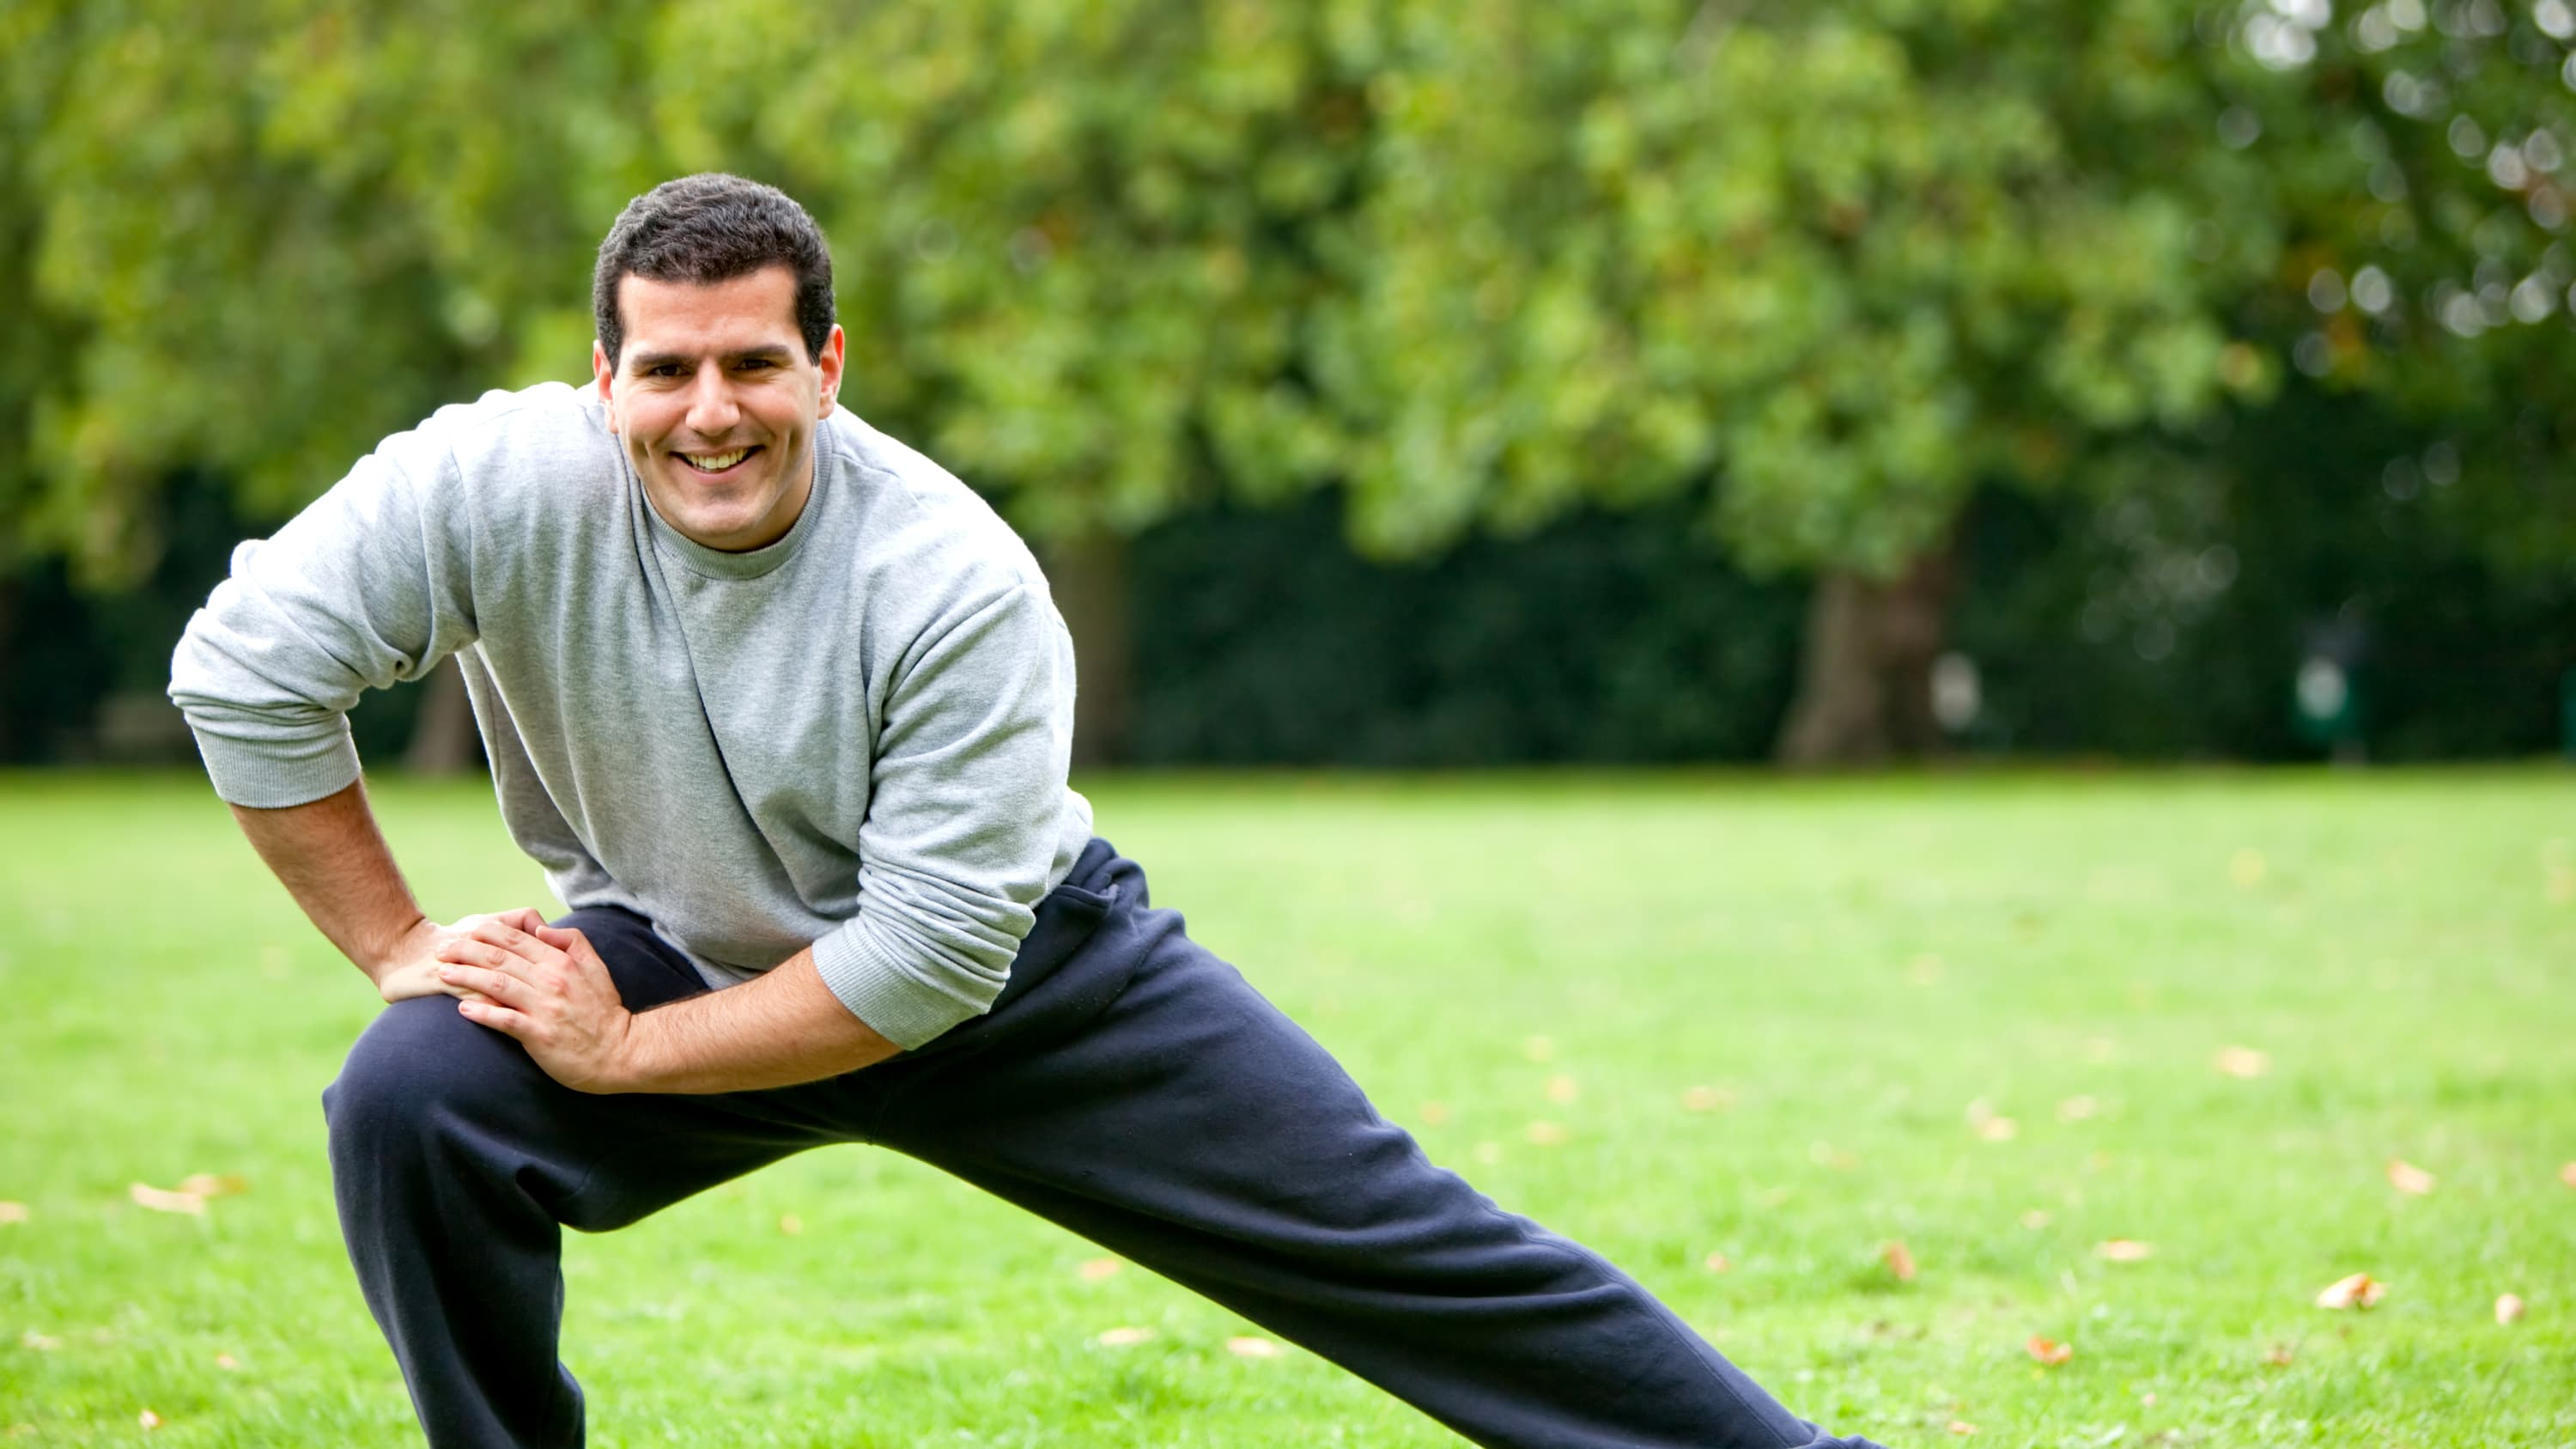 An athletic man in sweatpants who finally has pain relief after surgery stretches in the park.